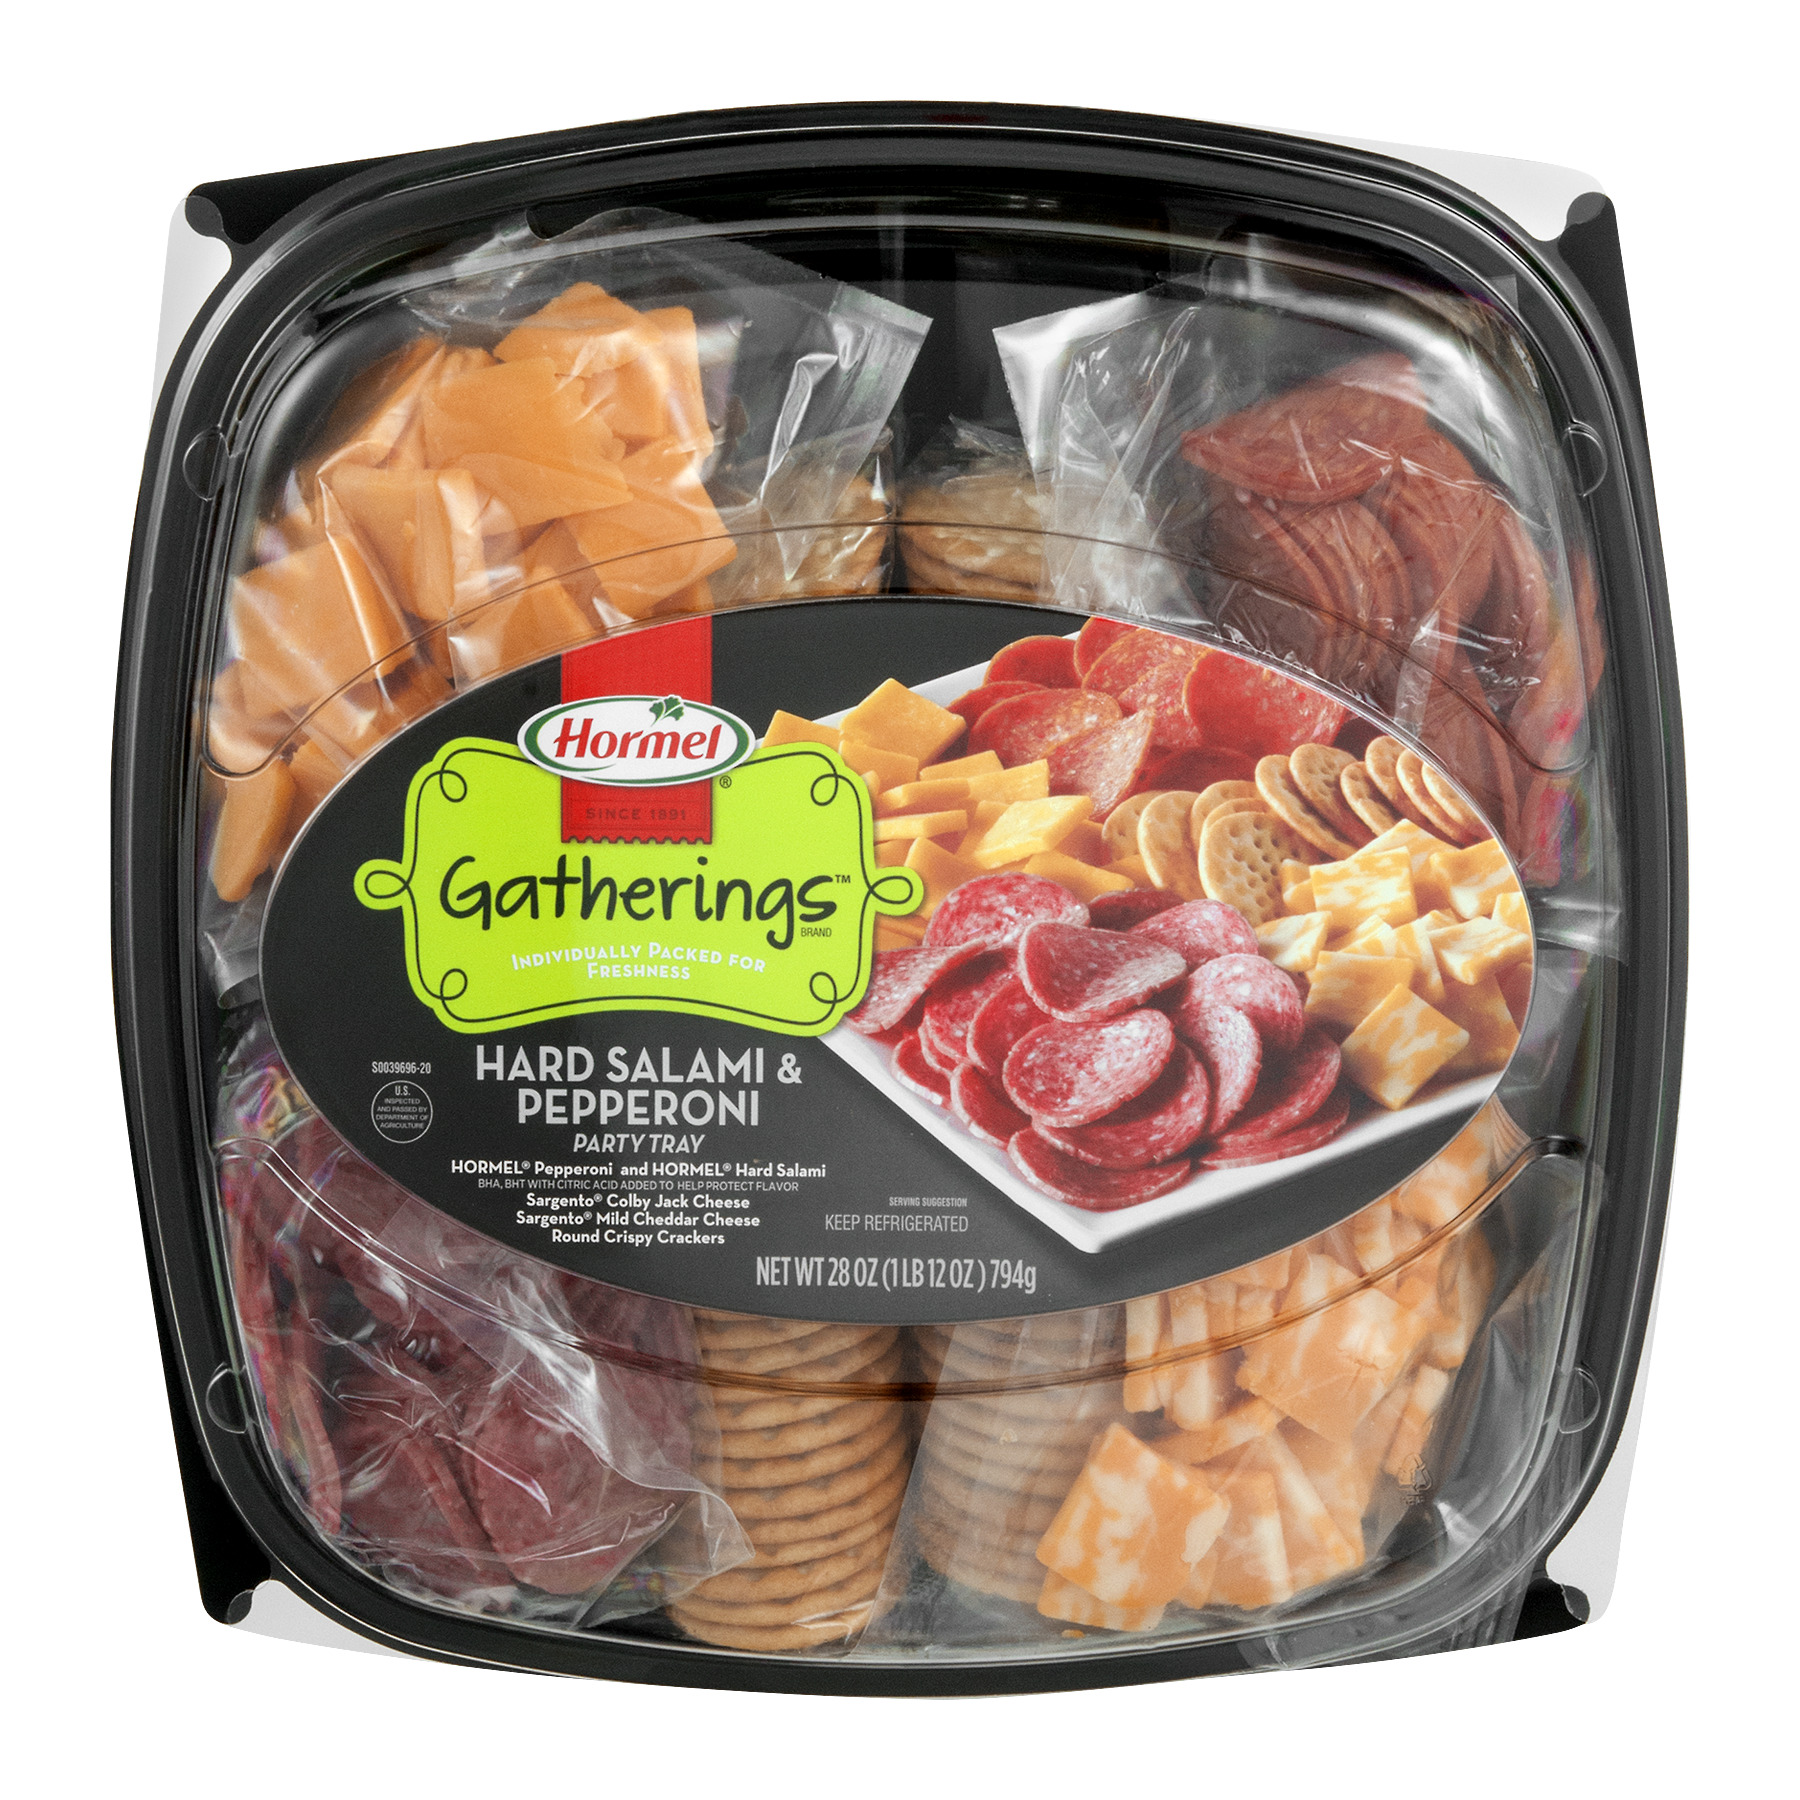 Hormel Gatherings Hard Salami & Pepperoni Party Tray, 28.0 OZ